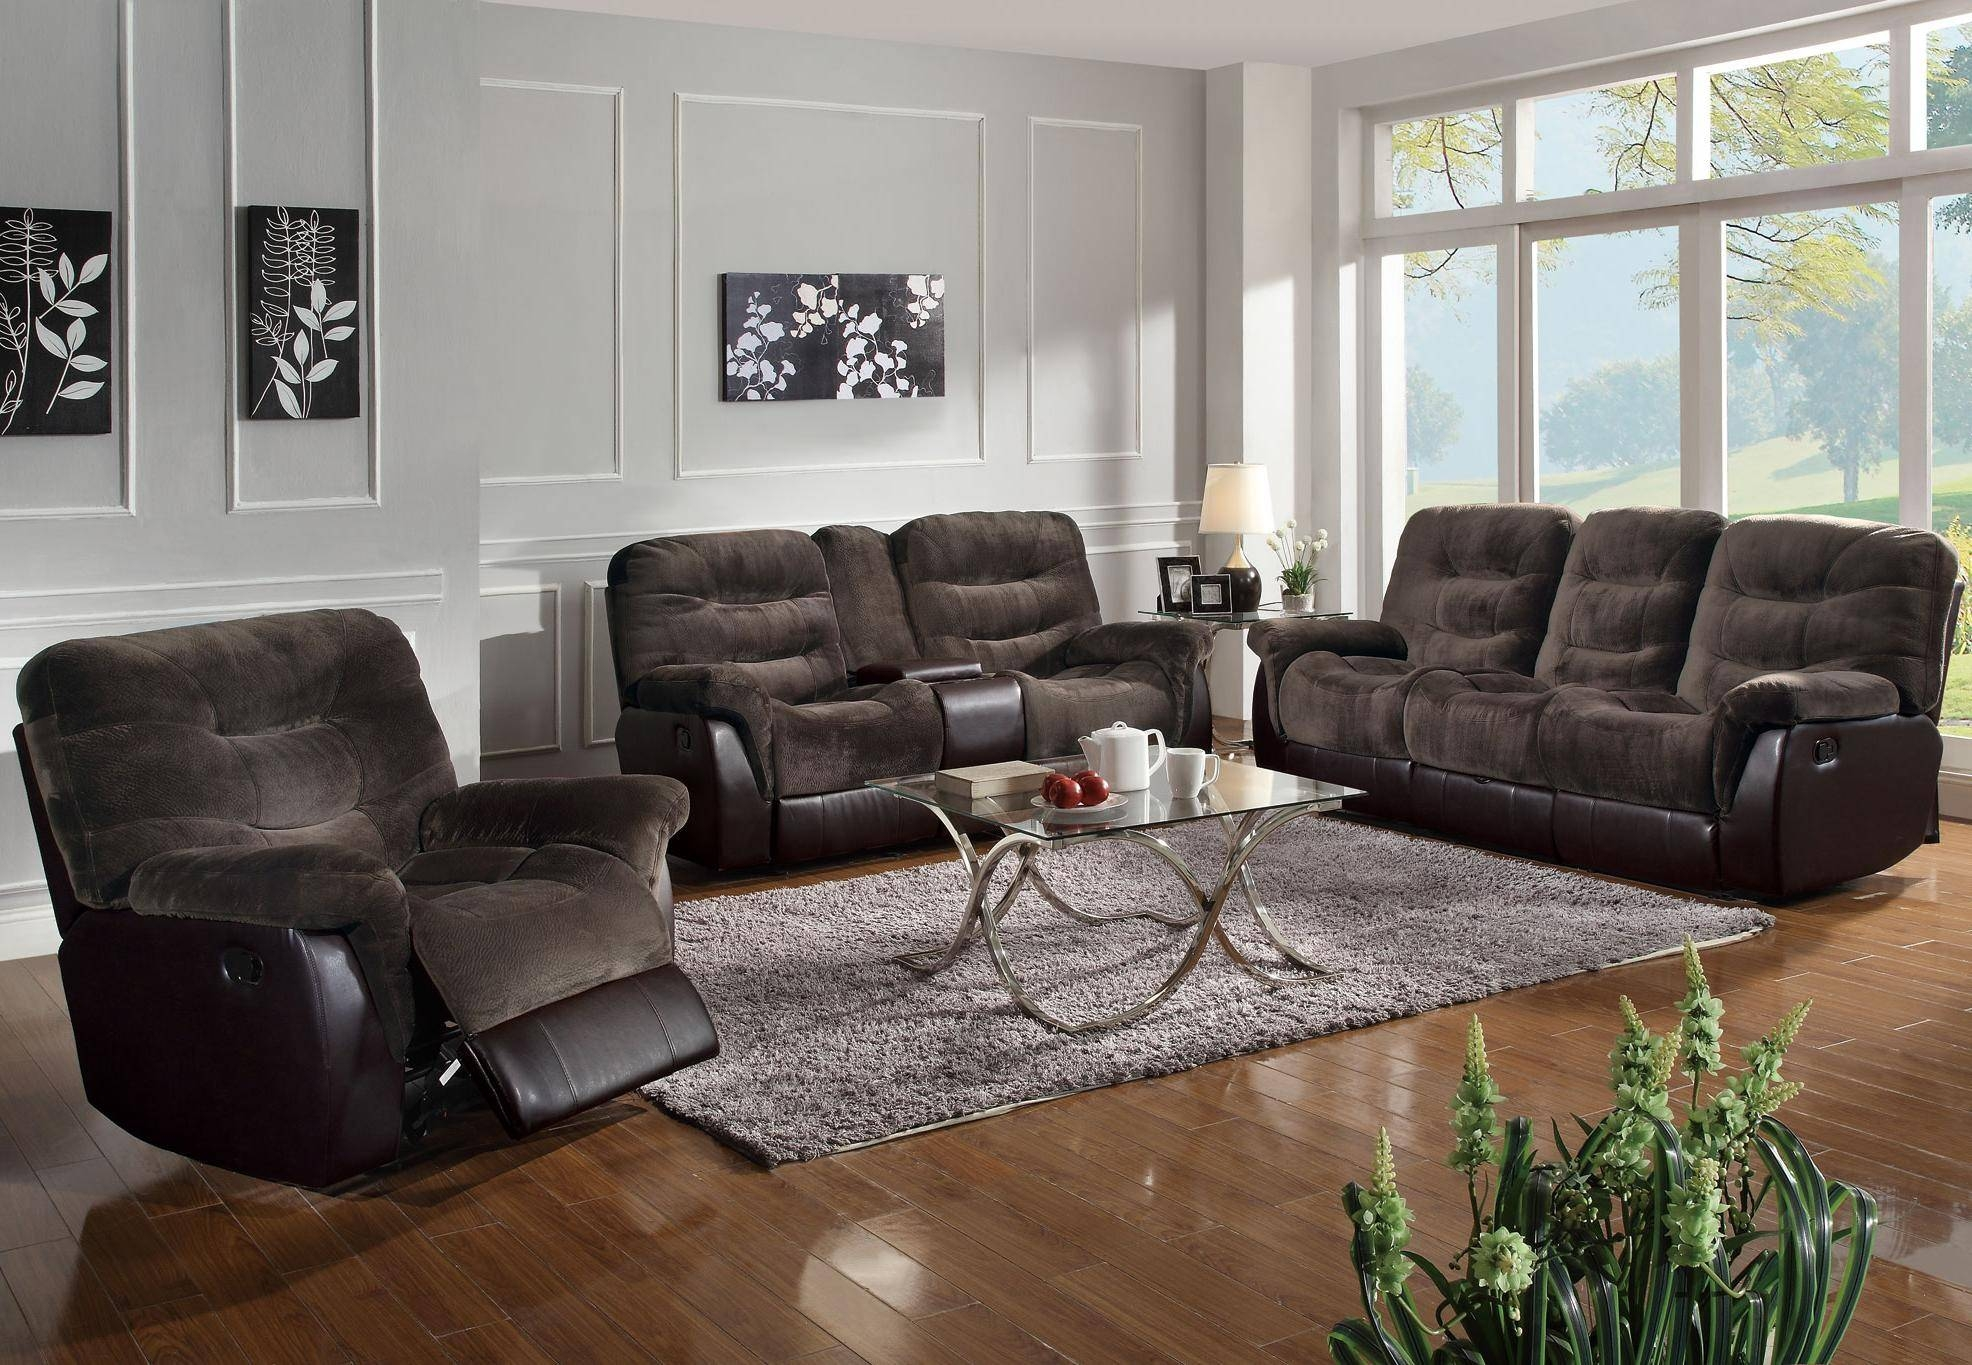 Contemporary Reclining Sofa | Sofa Gallery | Kengire With Sectional Sofas For Small Spaces With Recliners (View 3 of 30)